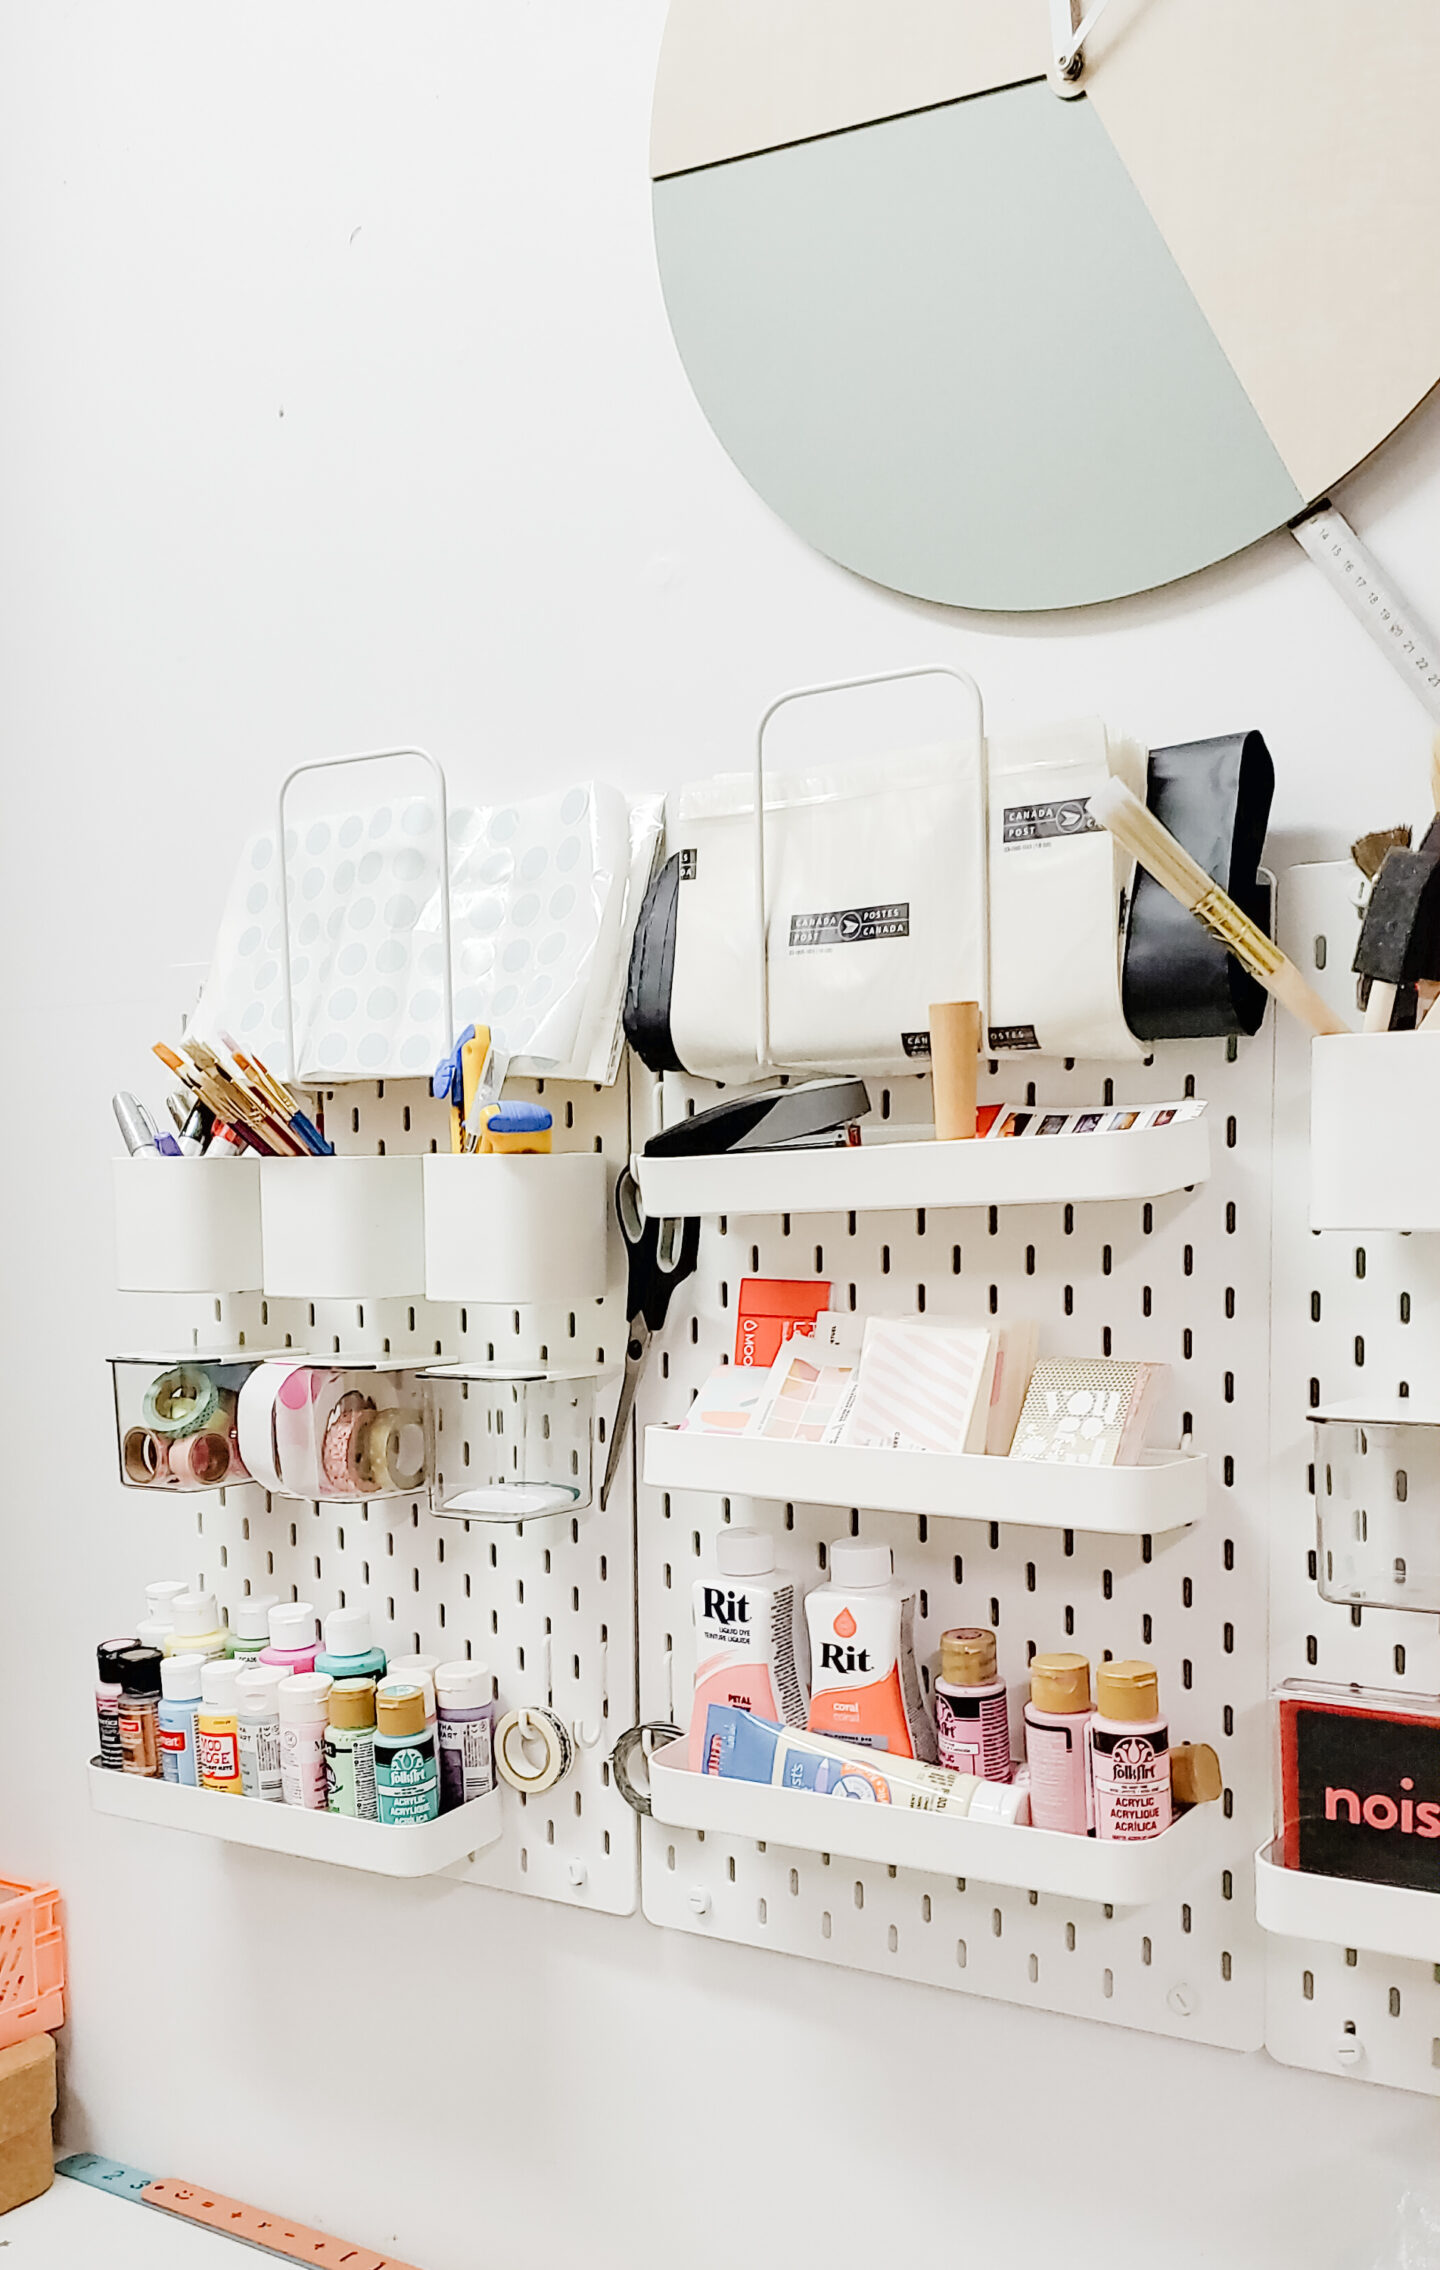 Pegboard organization ideas